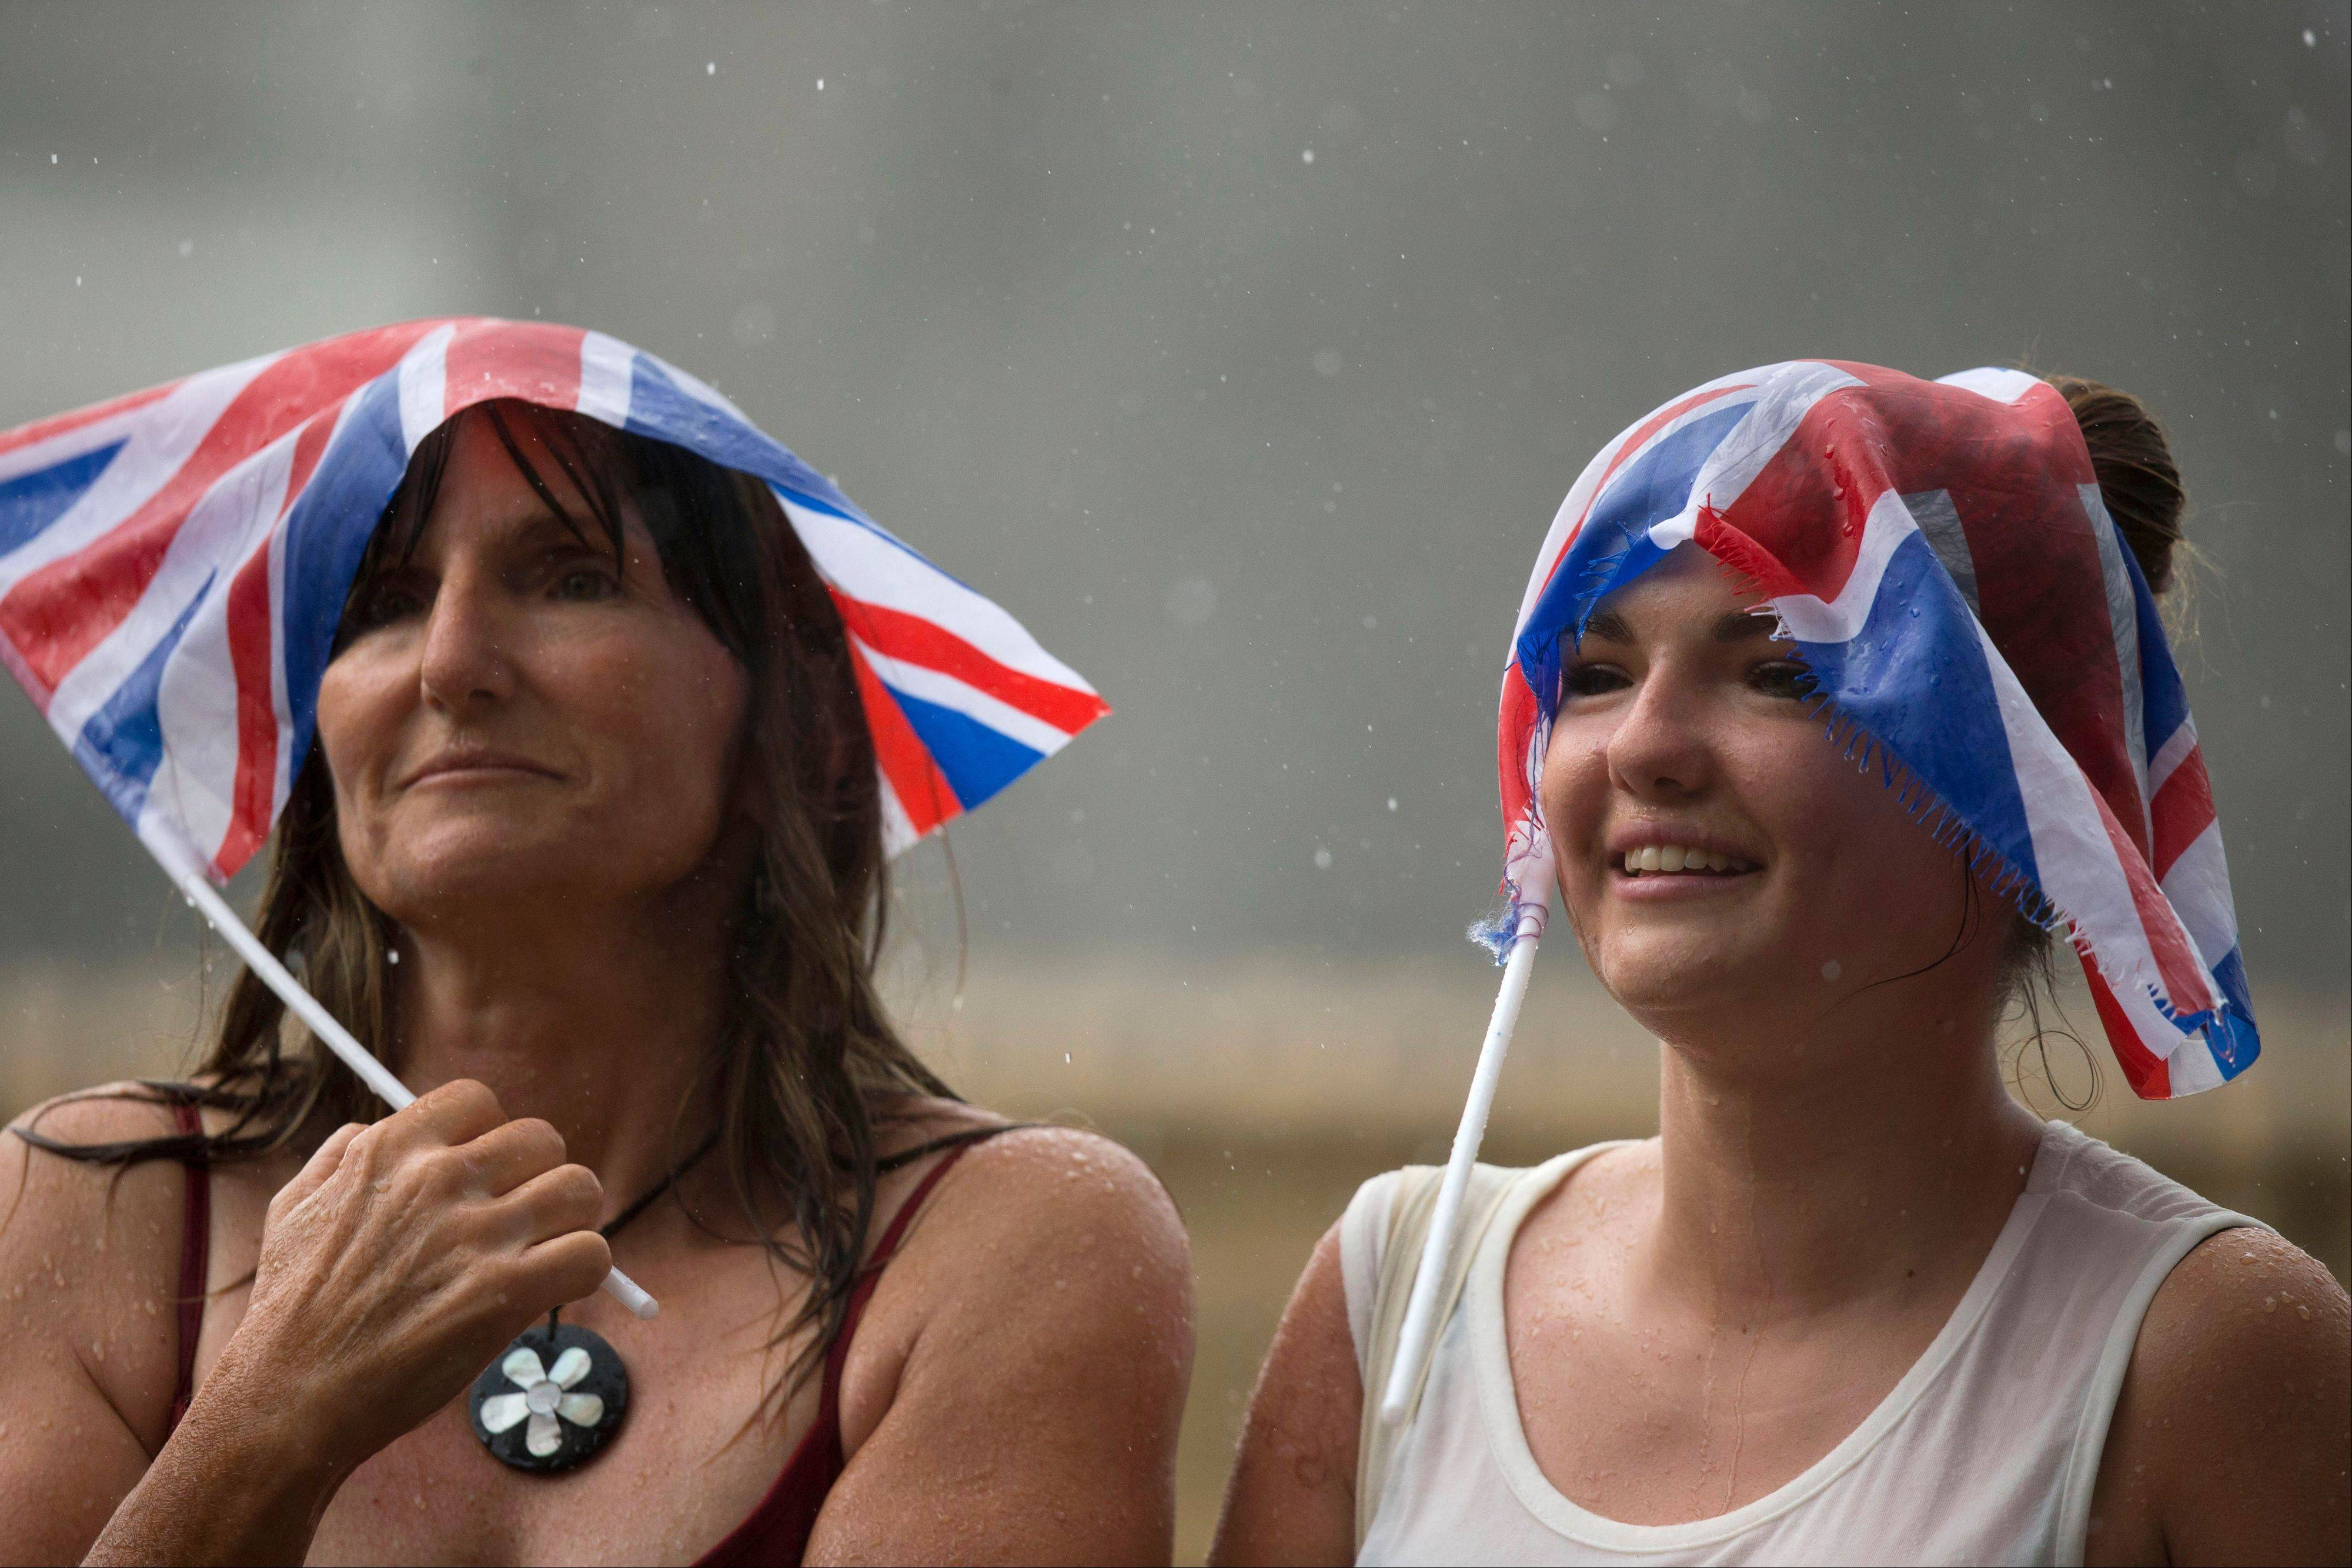 Royal supporters use Union flags to shelter from the rain as they await the departure of Britain's Prince William, Kate, Duchess of Cambridge and the Prince of Cambridge, outside the entrance of the private Lindo Wing at St. Mary's Hospital in London, Tuesday.